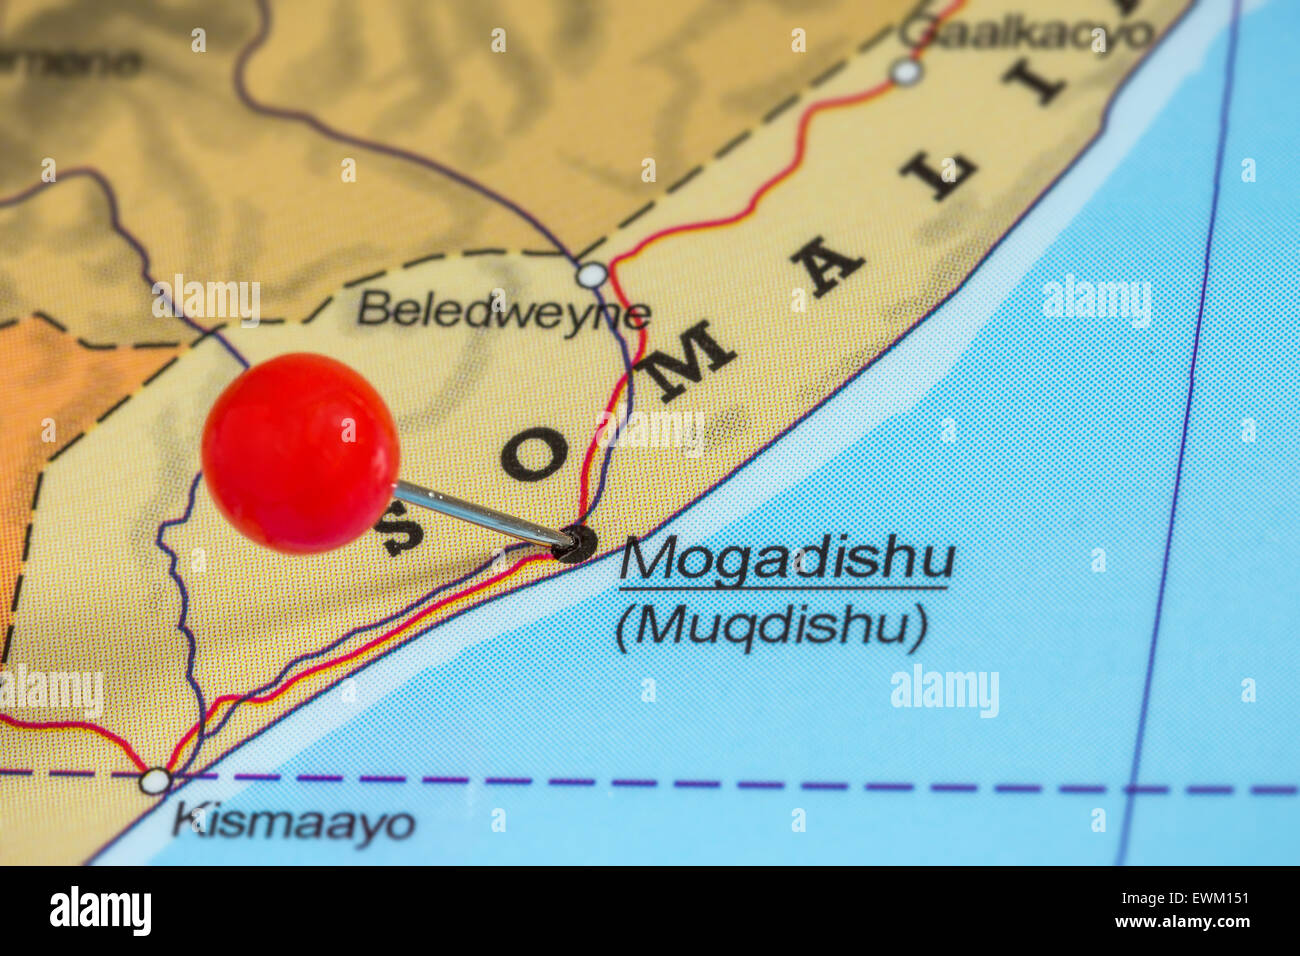 Map Of Somalia Stock Photos & Map Of Somalia Stock Images - Alamy